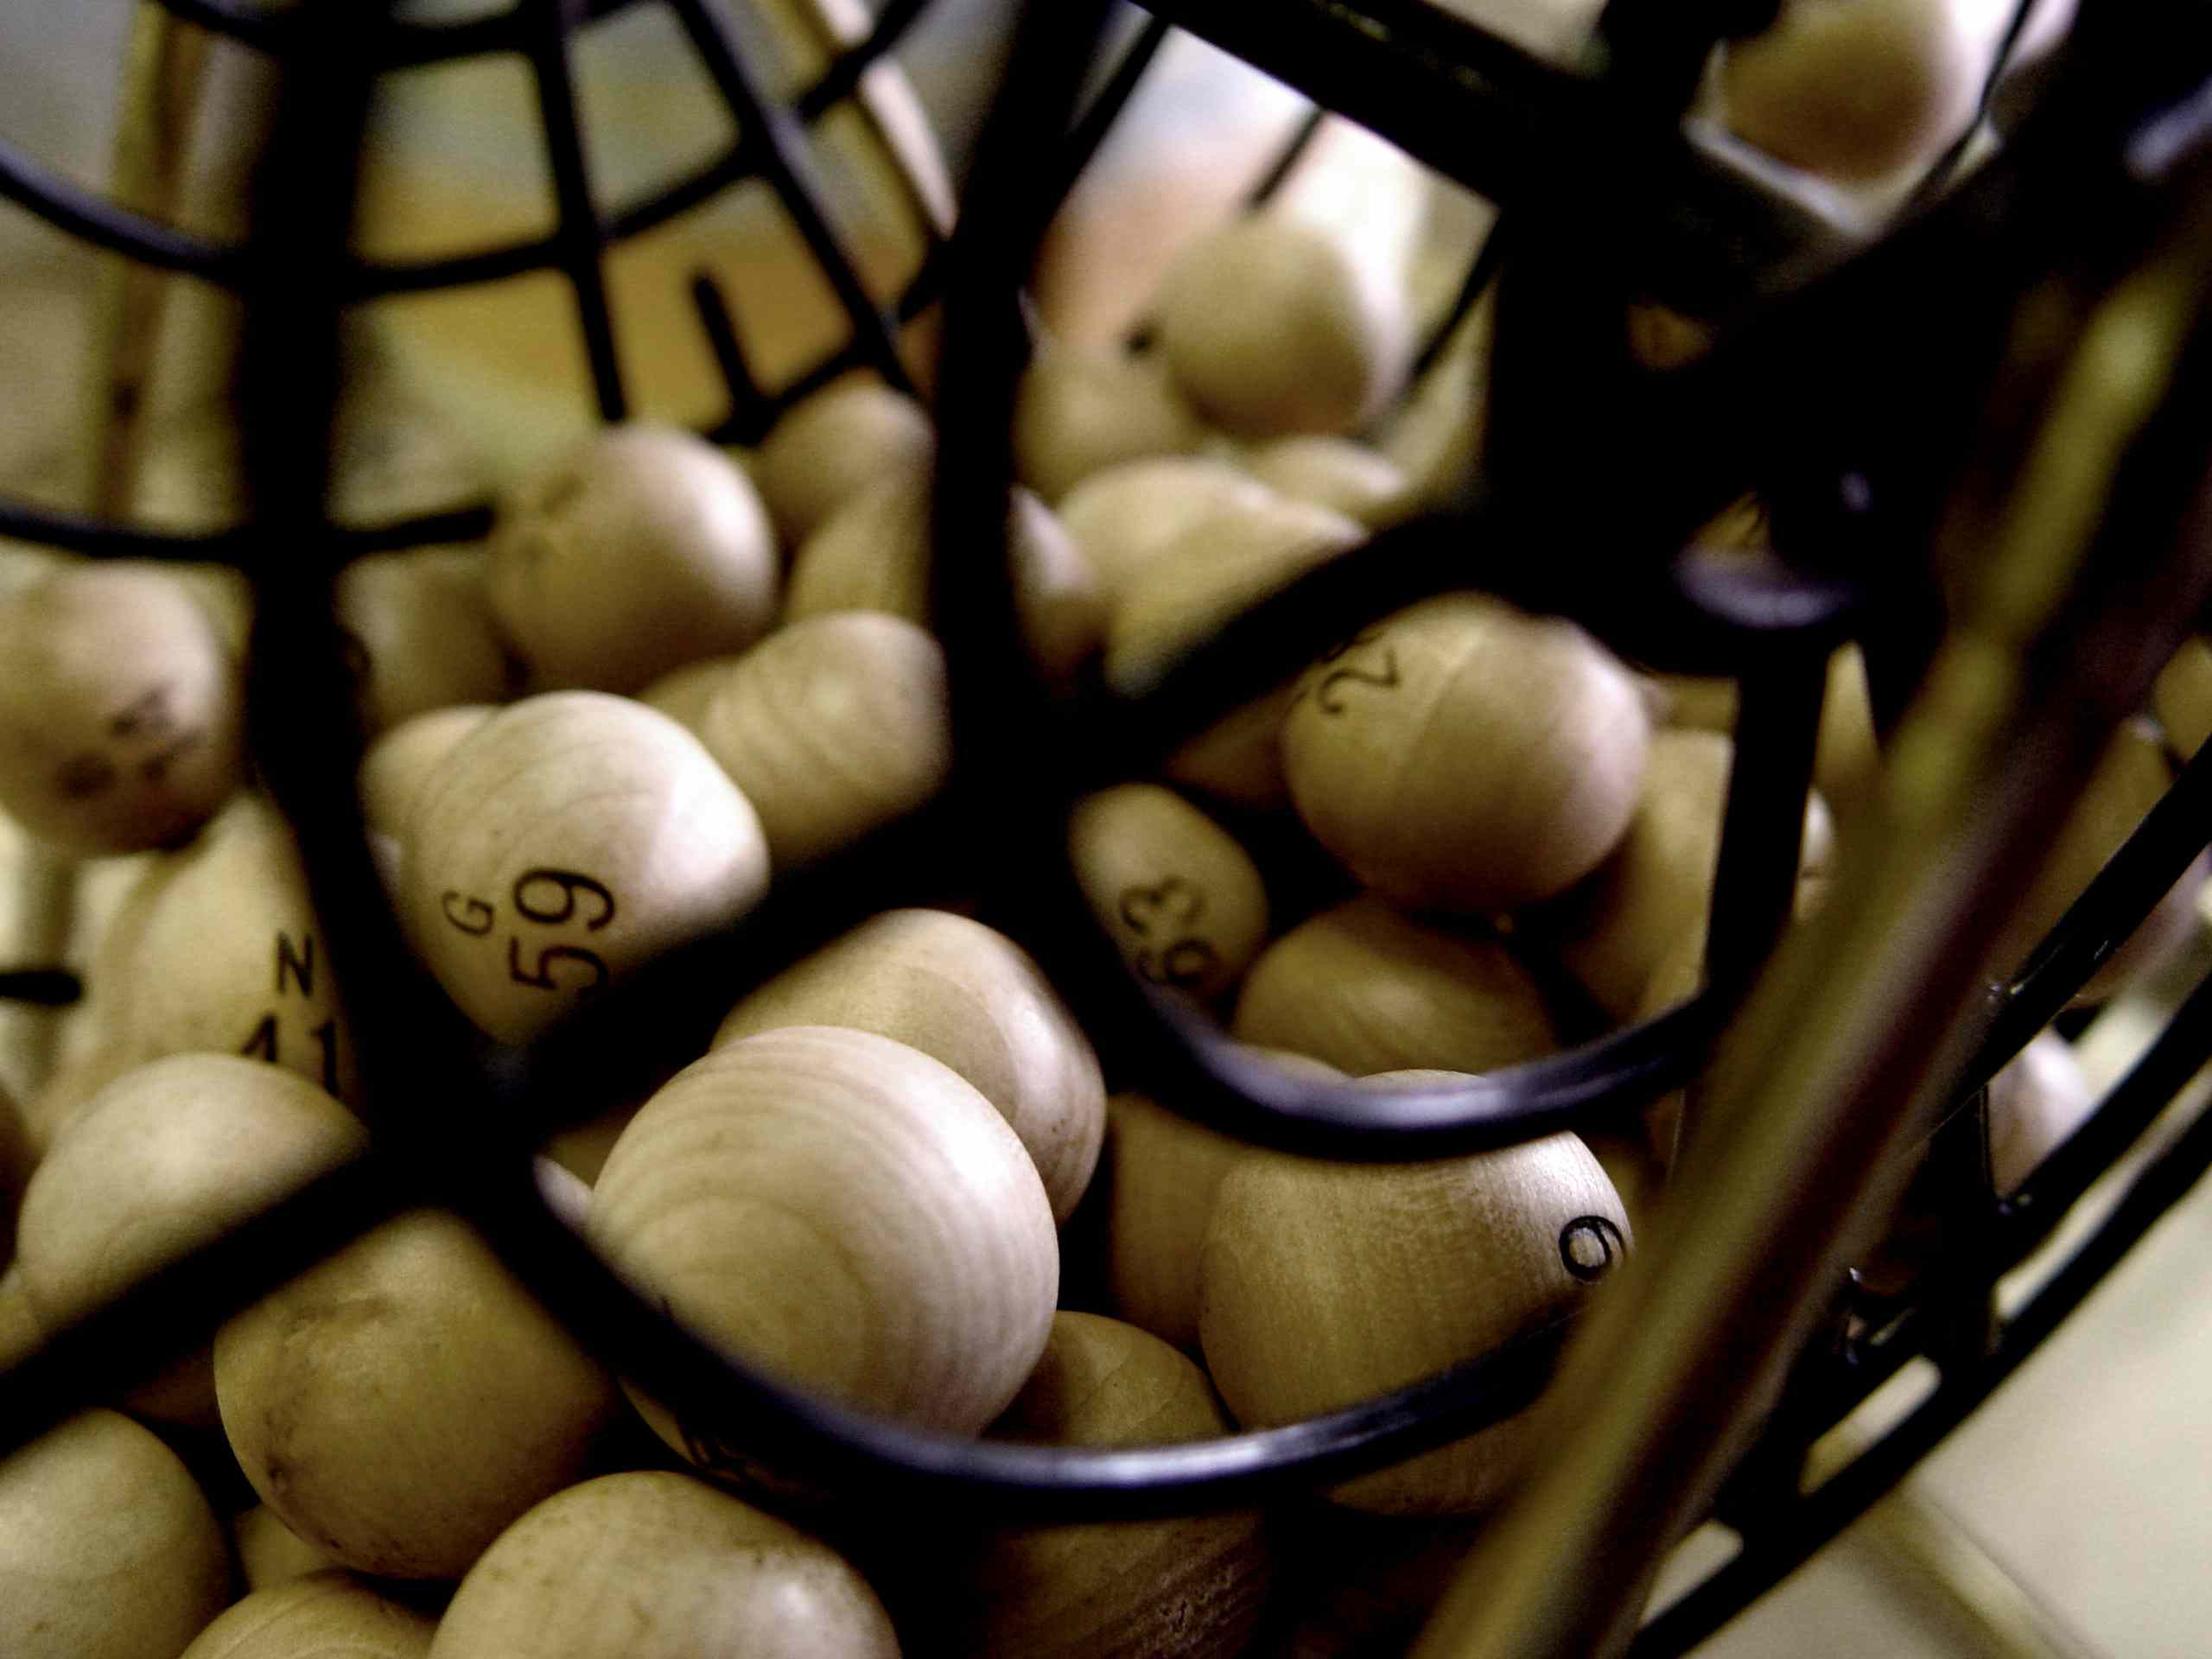 Image of a Bingo Cage, Like Those Used in PCH Prize Drawings